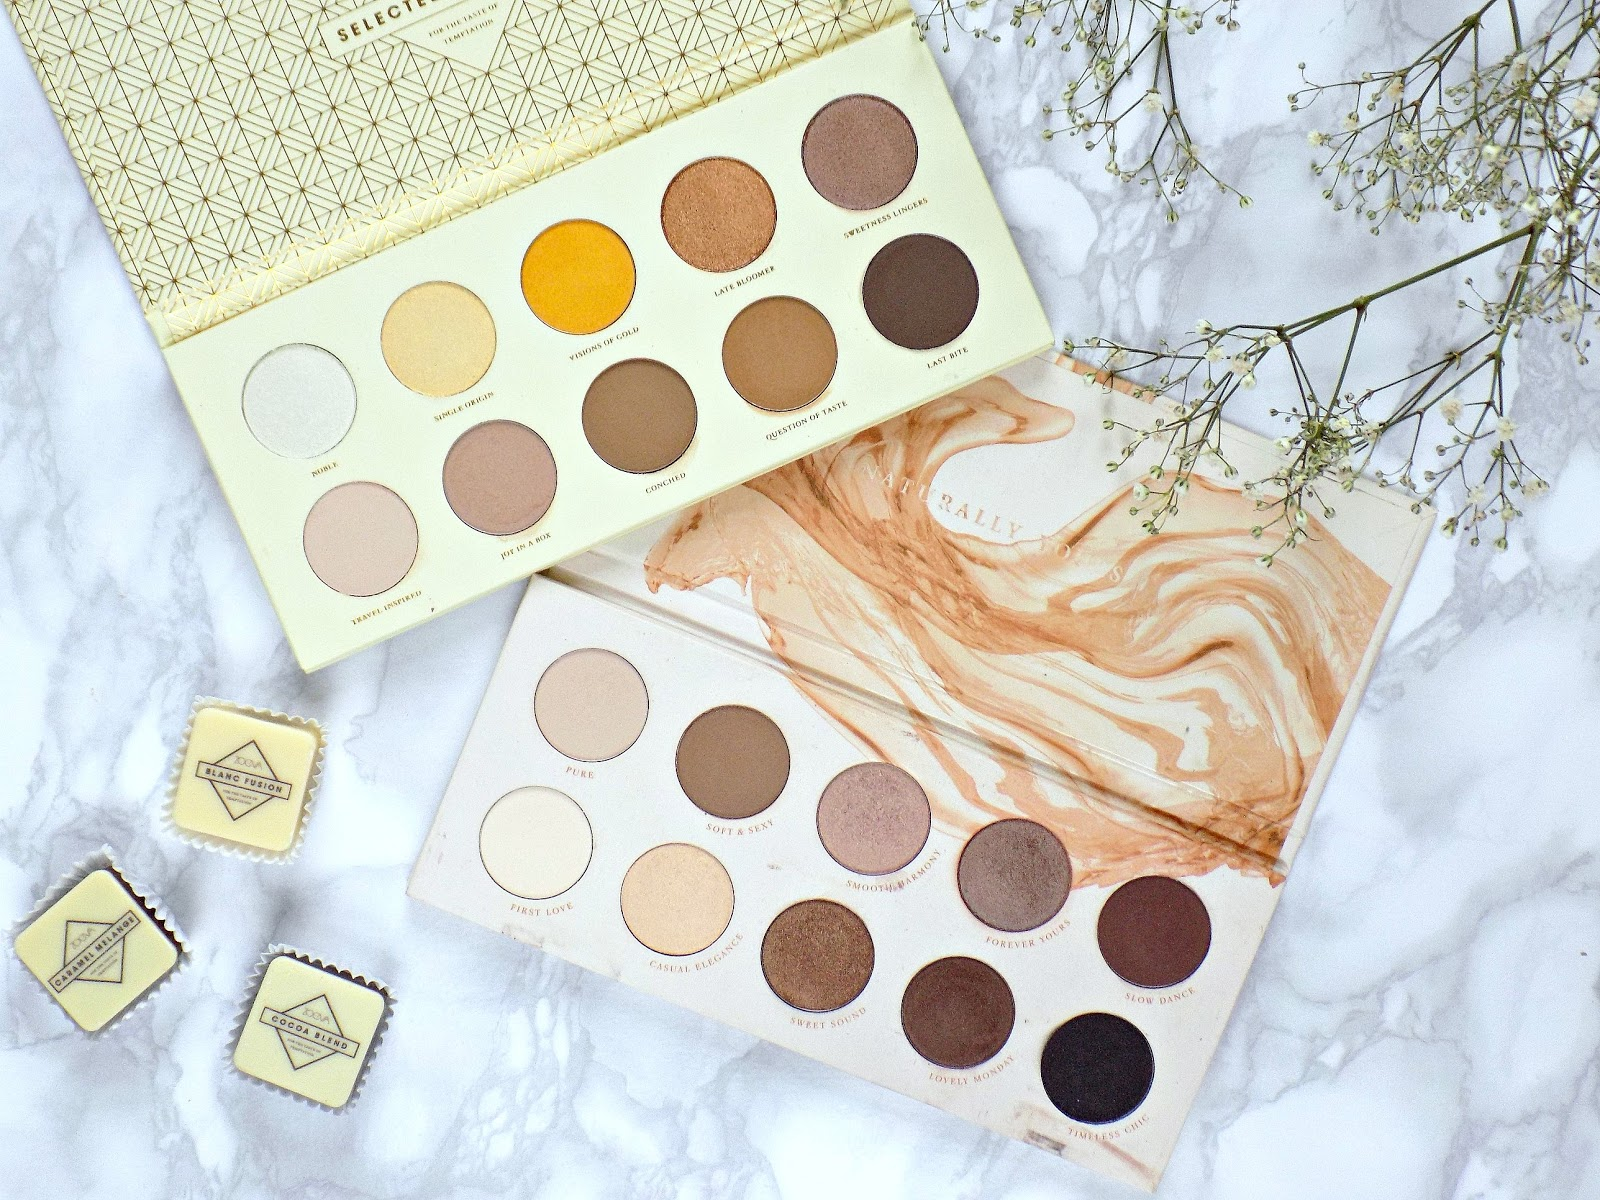 Zoeva Blanc Fusion palette vs Naturally Yours palette